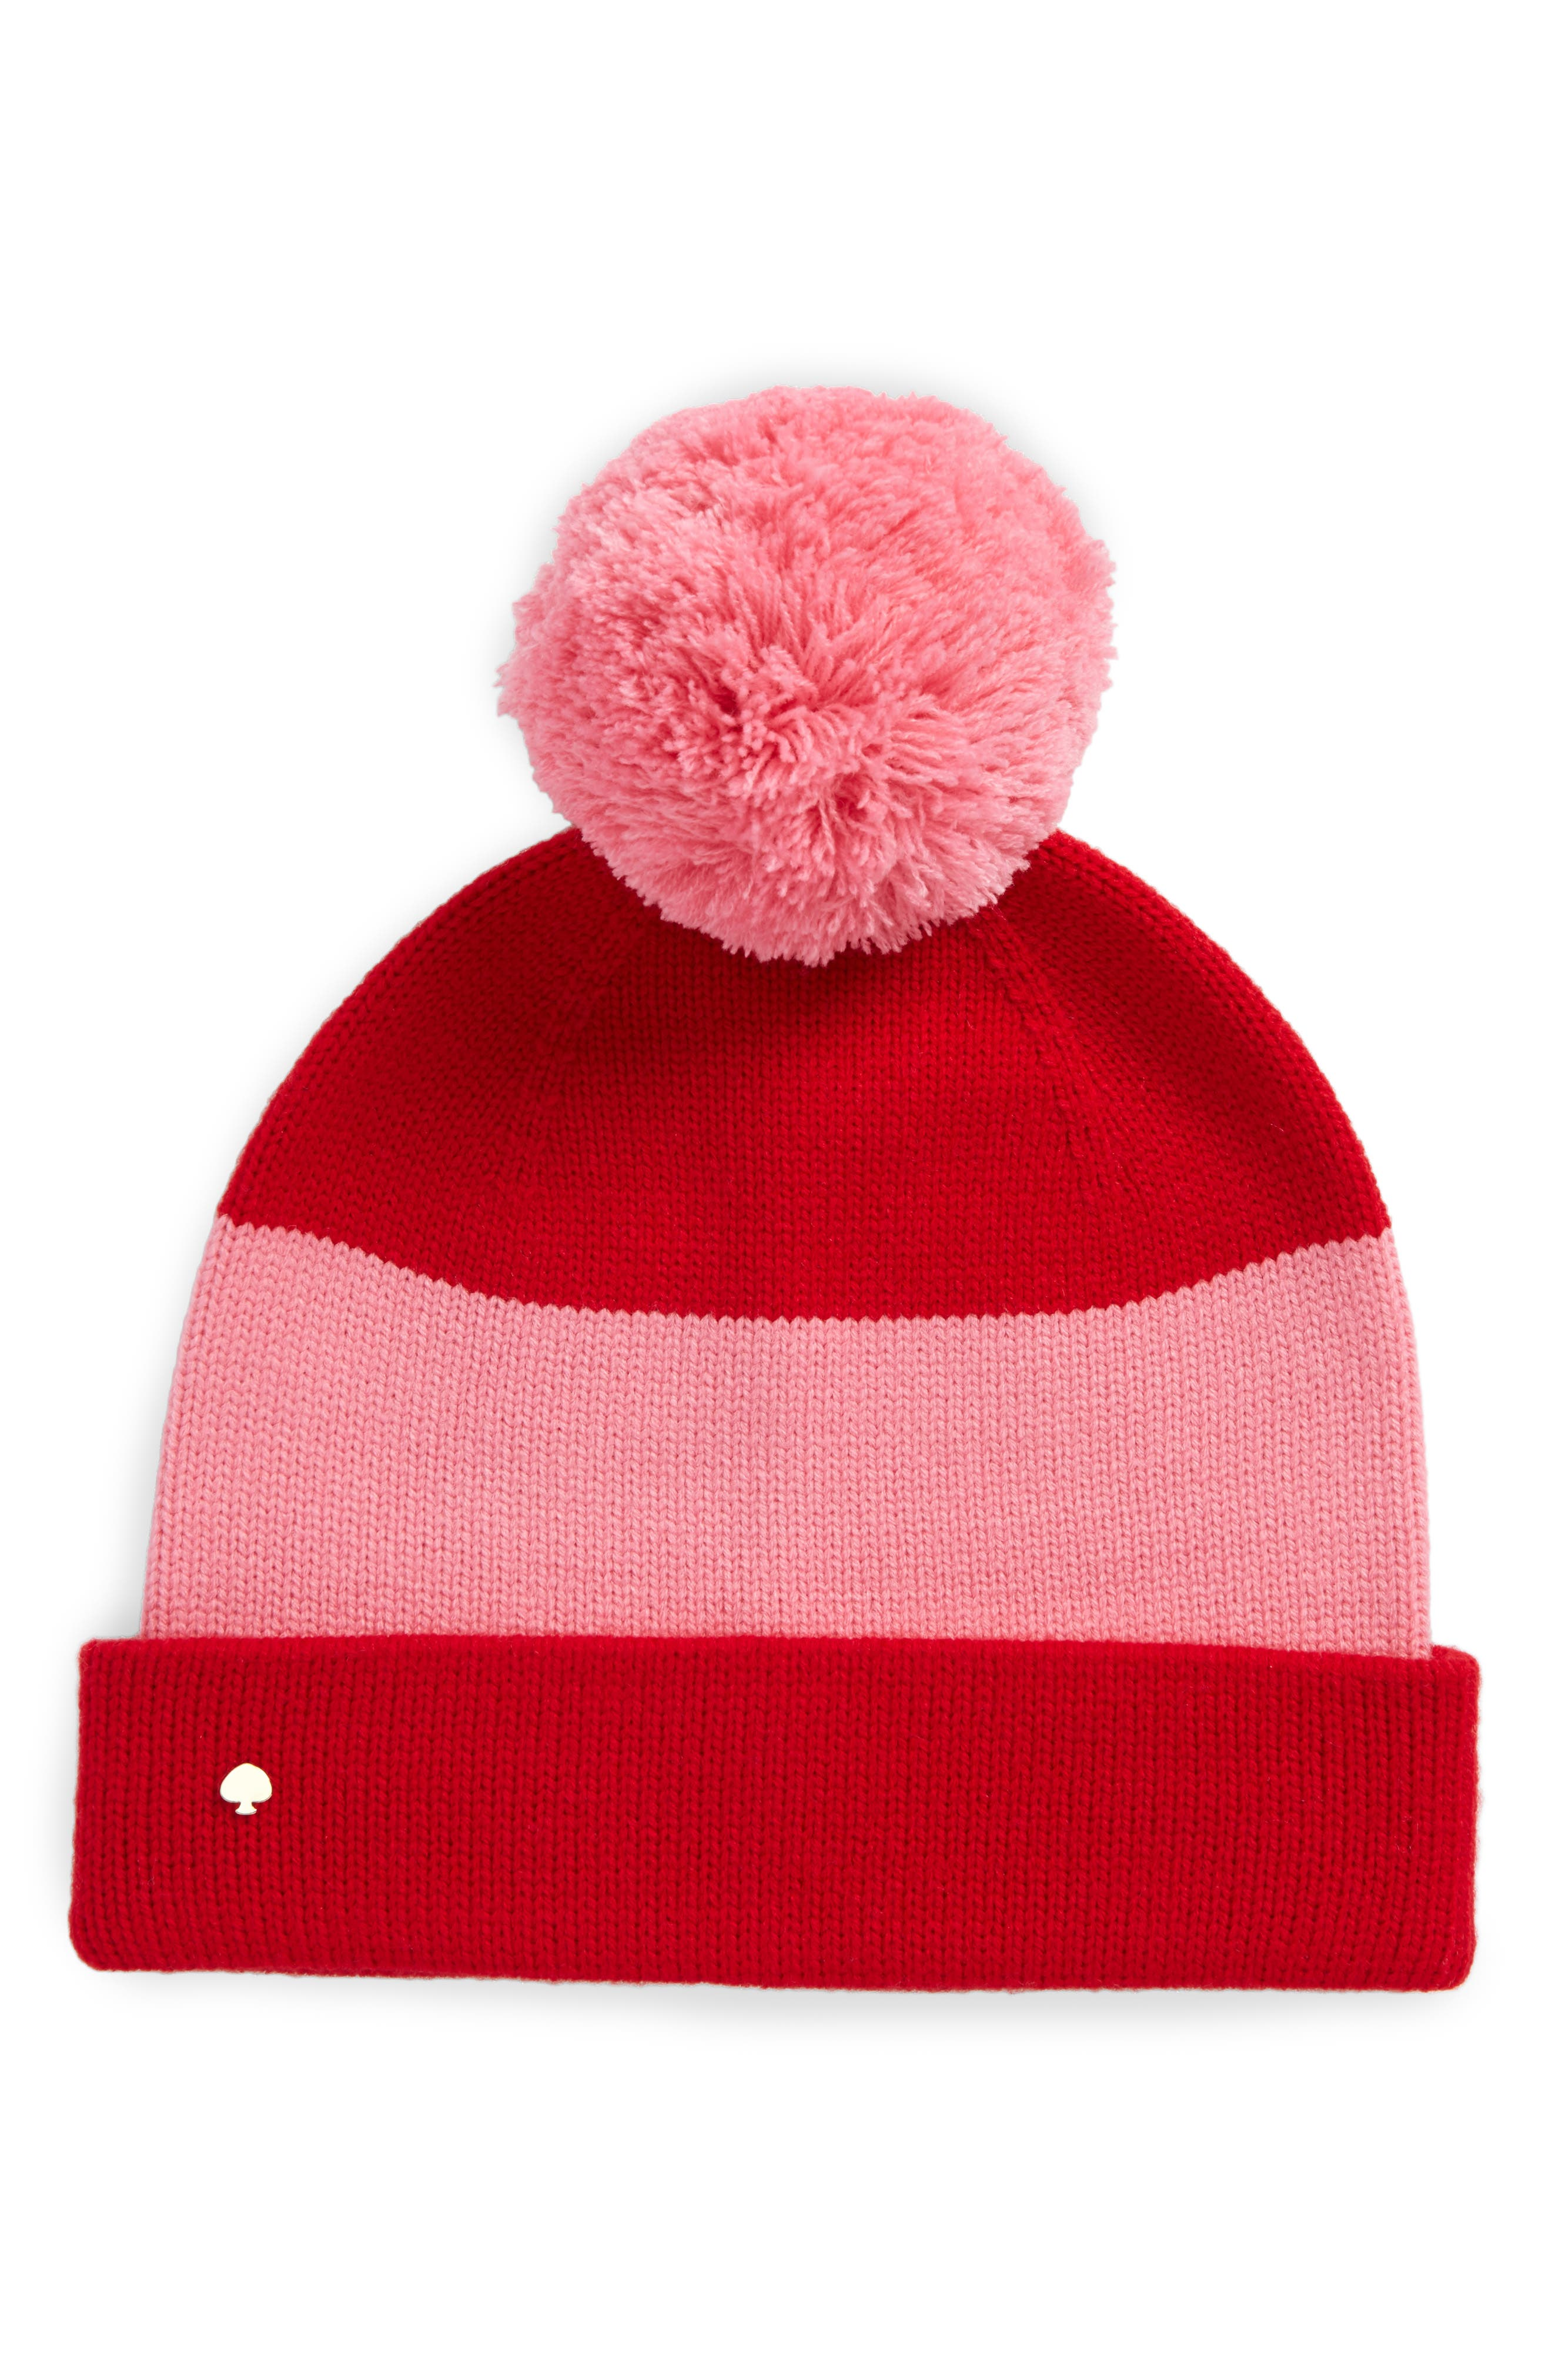 colorblock knit beanie,                             Main thumbnail 1, color,                             FLEUR DE LIS/CHARM RED